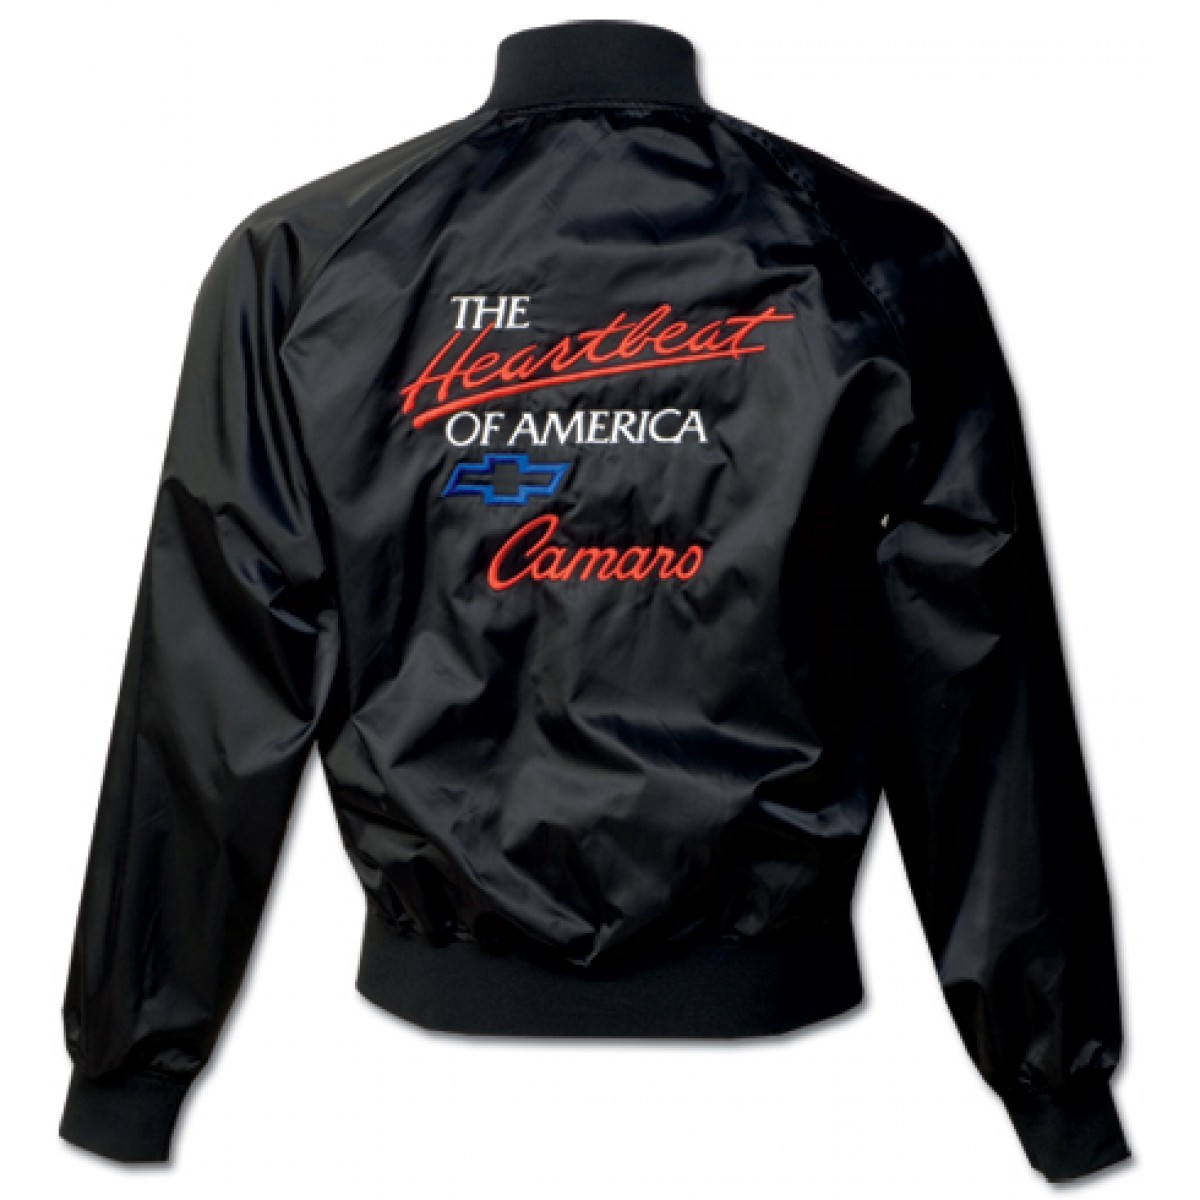 Heartbeat of america with camaro satin jacket